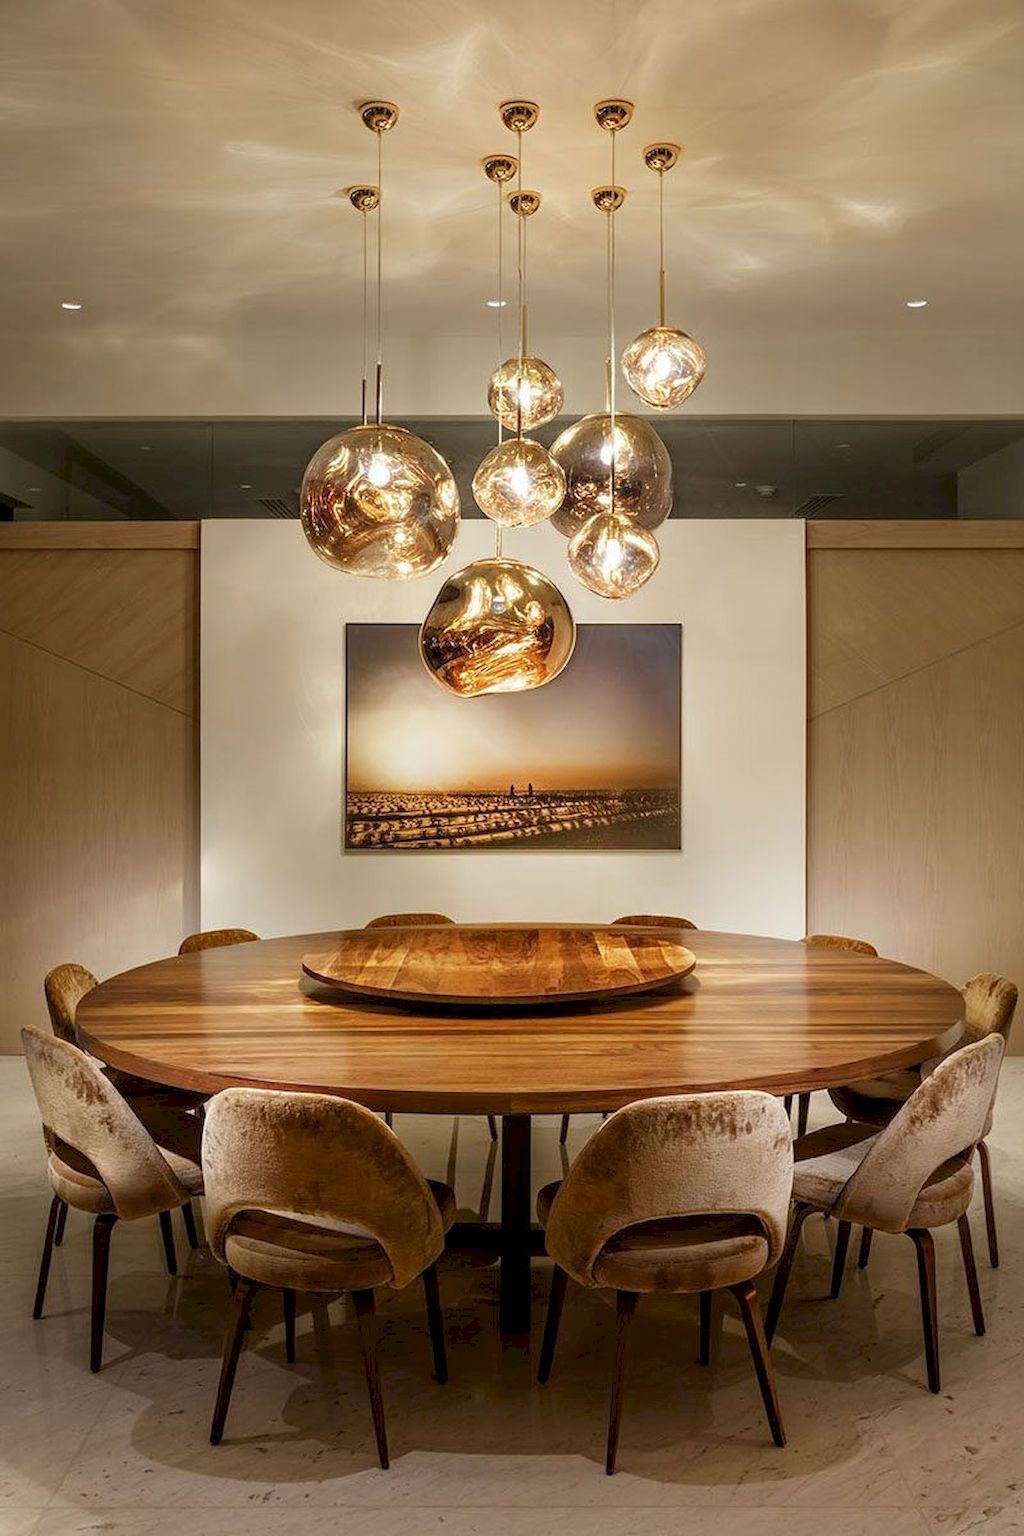 Round Dining Room Tables Decoration Ideas Dining Room Table Decor Round Dining Room Dining Room Small